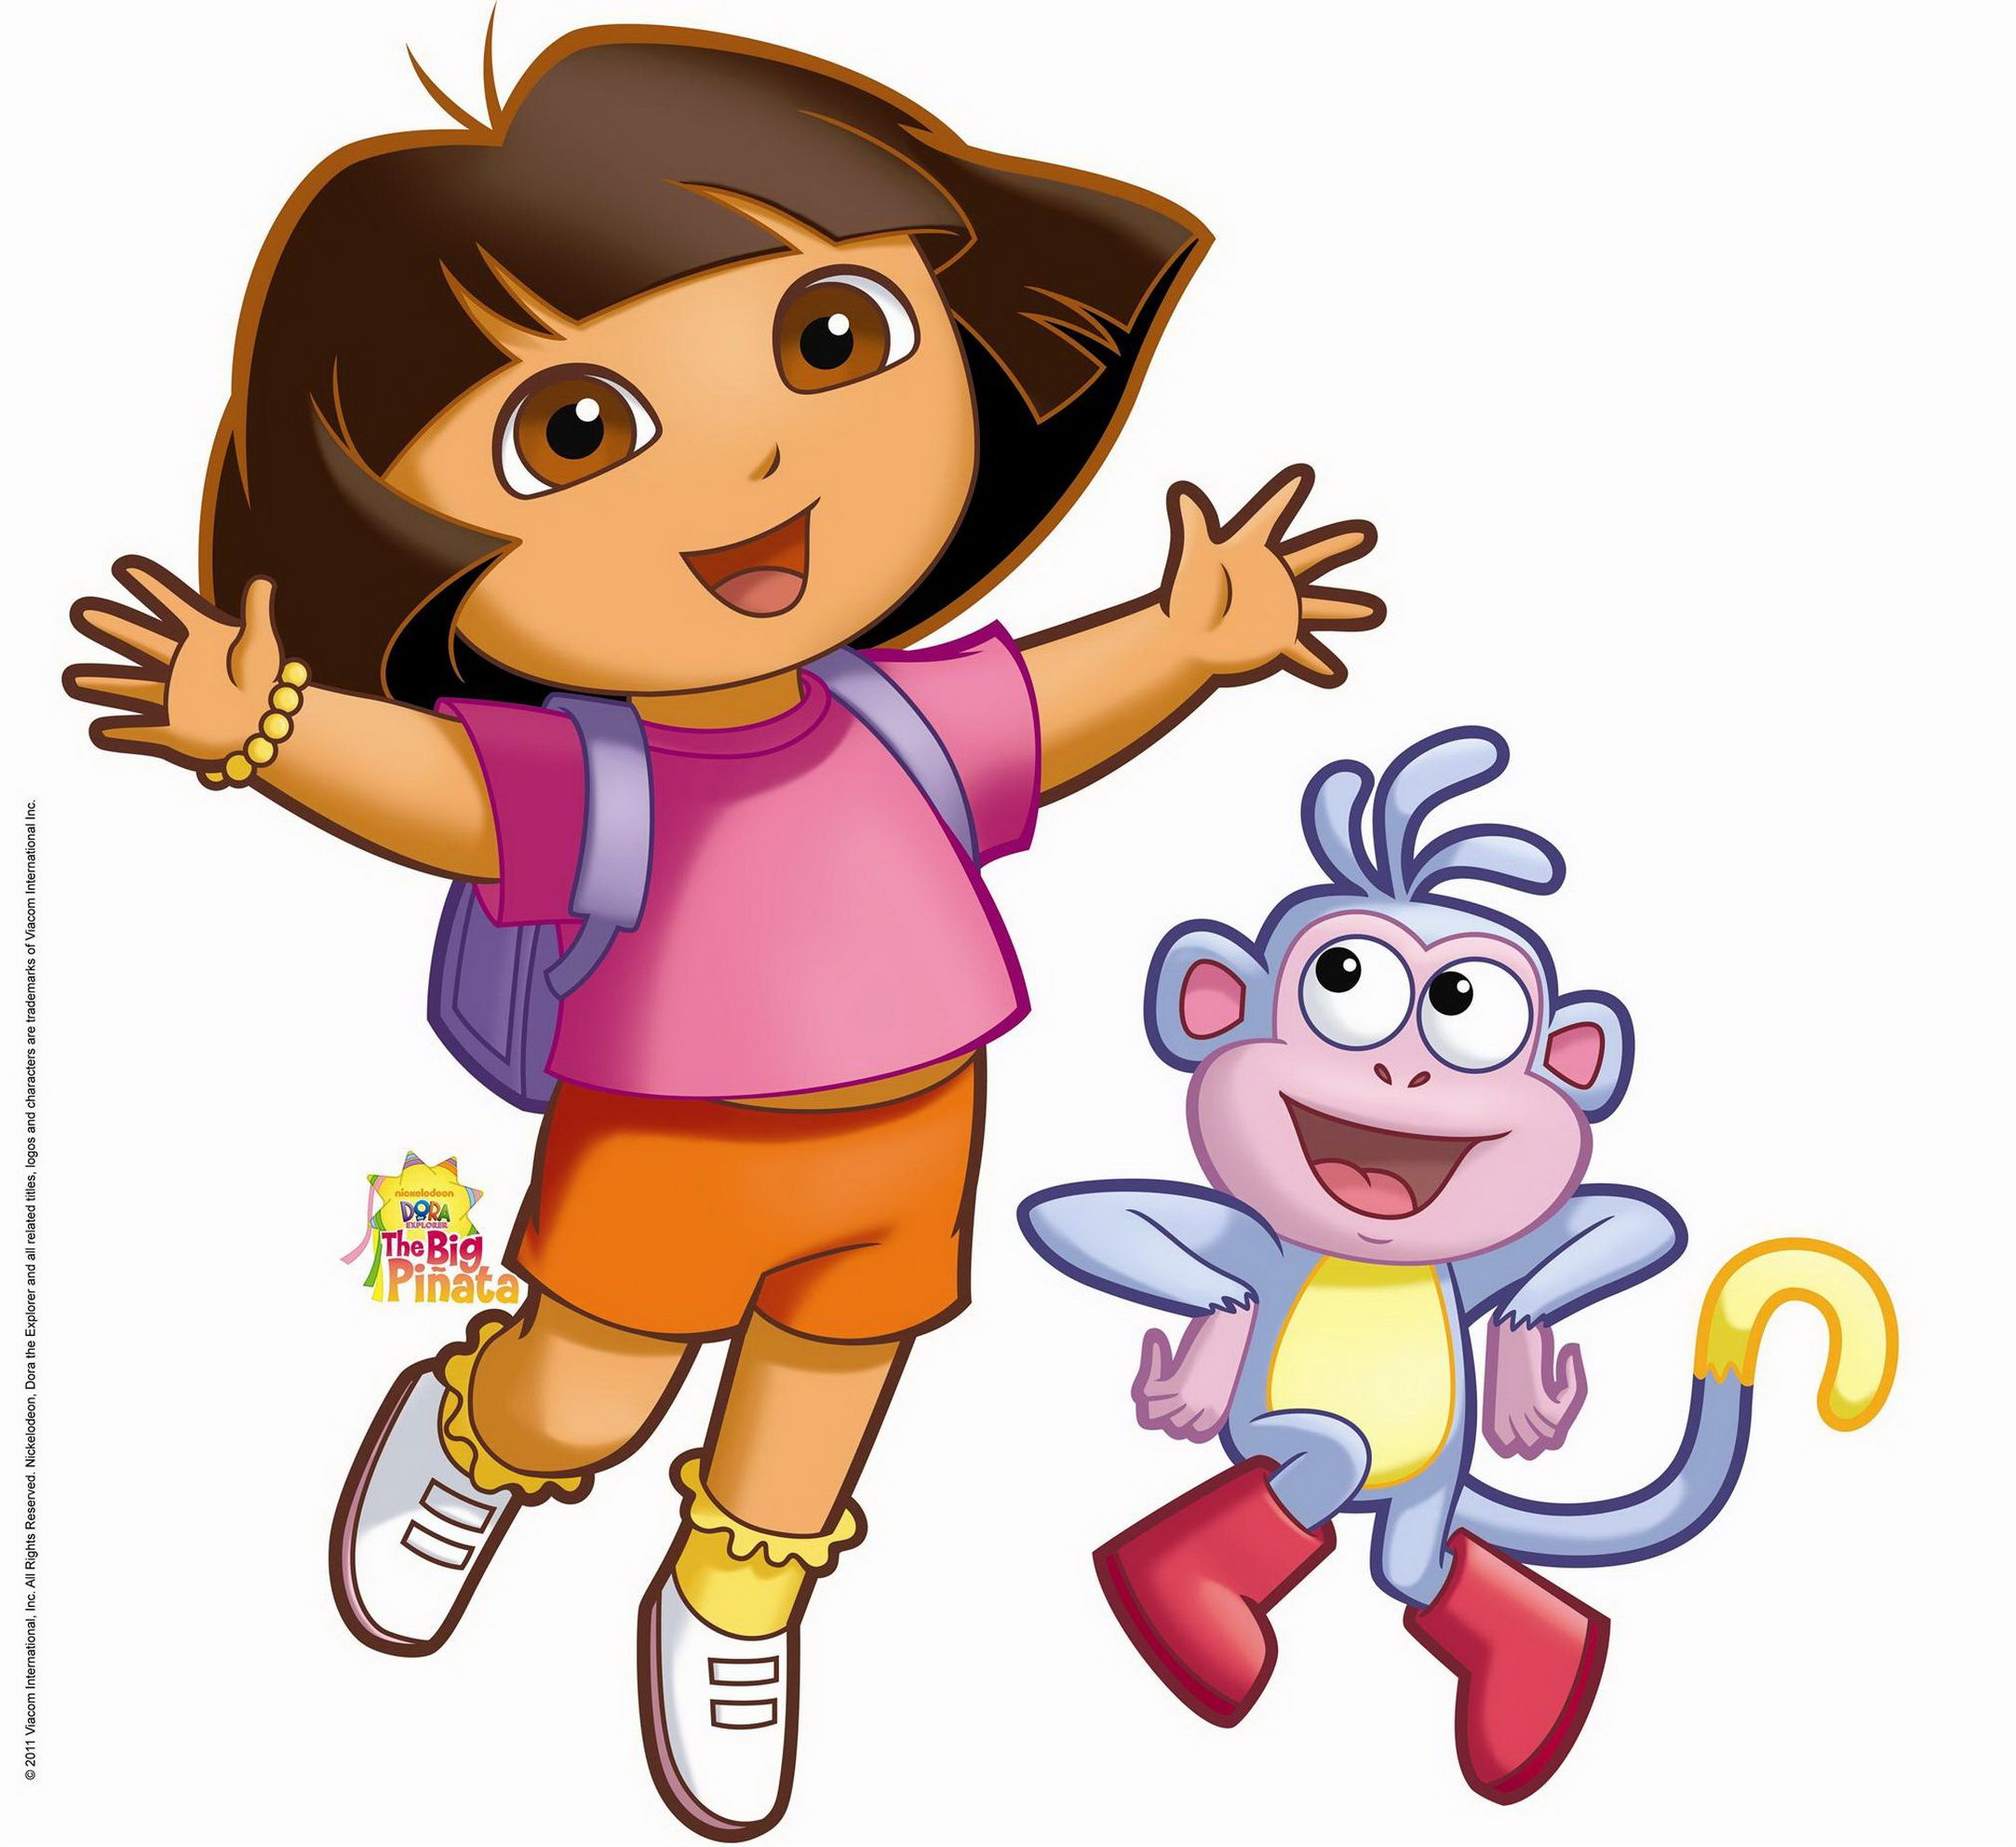 dora the explorer pictures Wallpaper | Summer | Pinterest | Easter